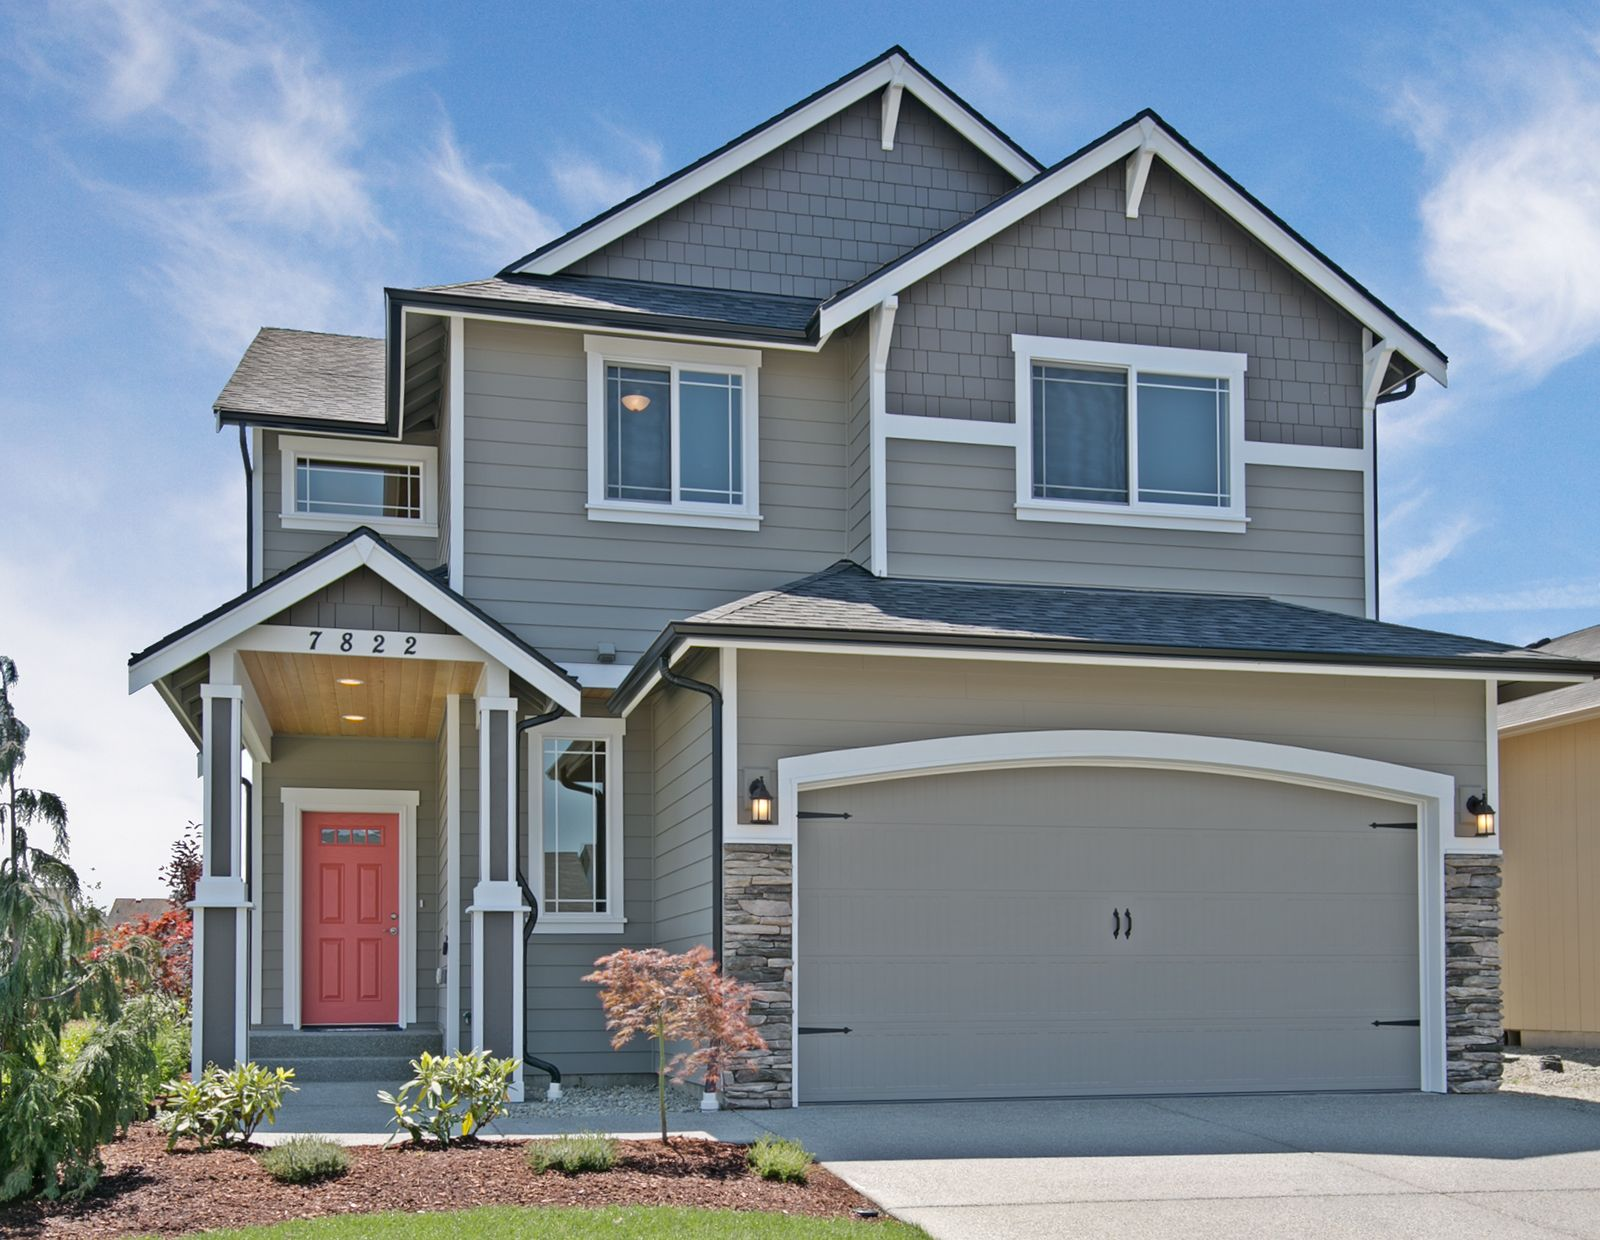 Grey Exterior Doors Exterior Property Adorable Diamond Plangrey Exterior With White Trimblack Gutters And A . Review